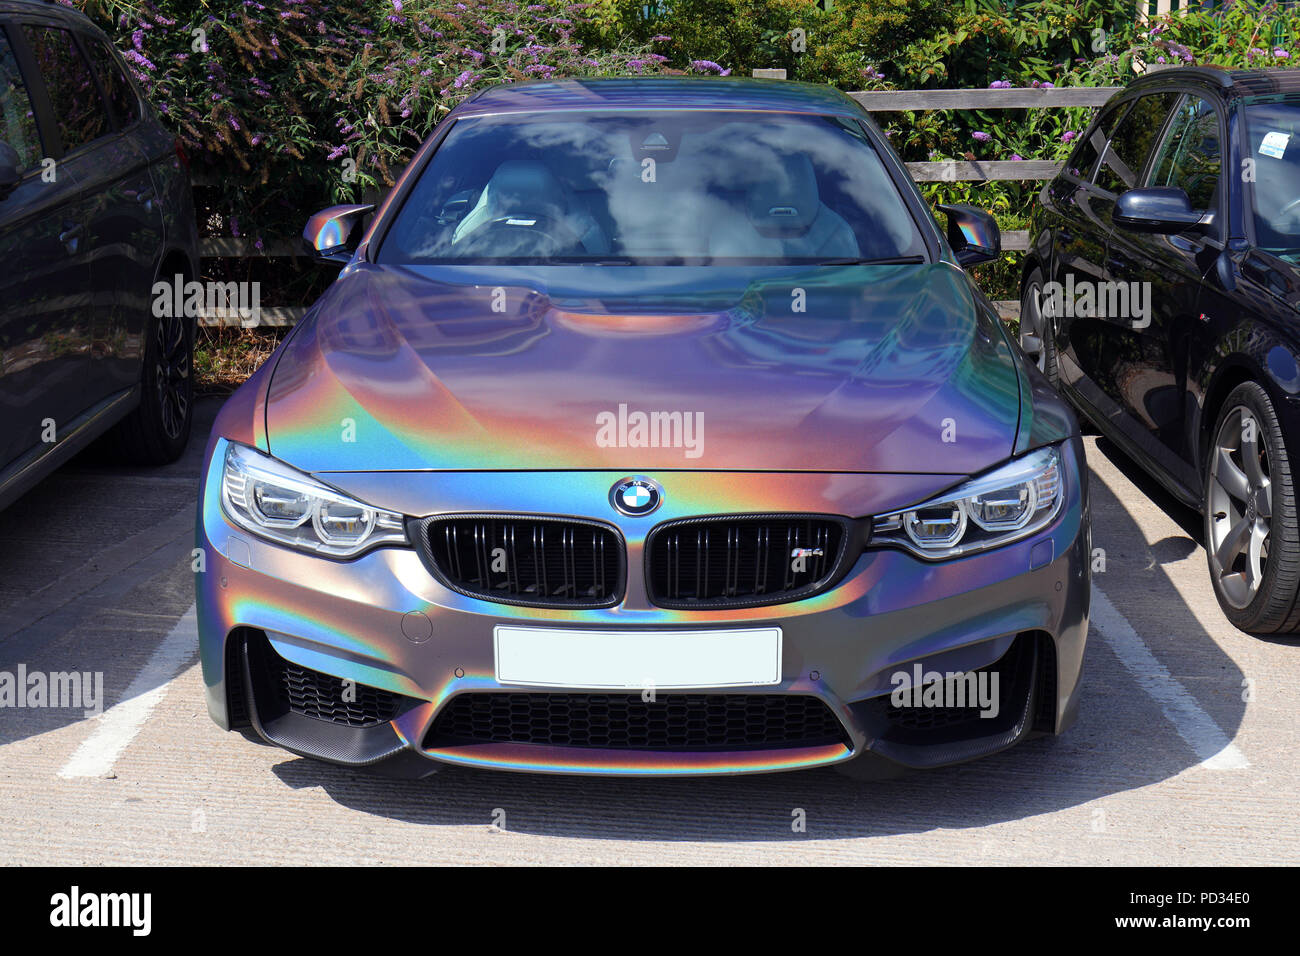 A Bmw With A Holographic Like Paint Work That Changes As You Move Around Stock Photo Alamy